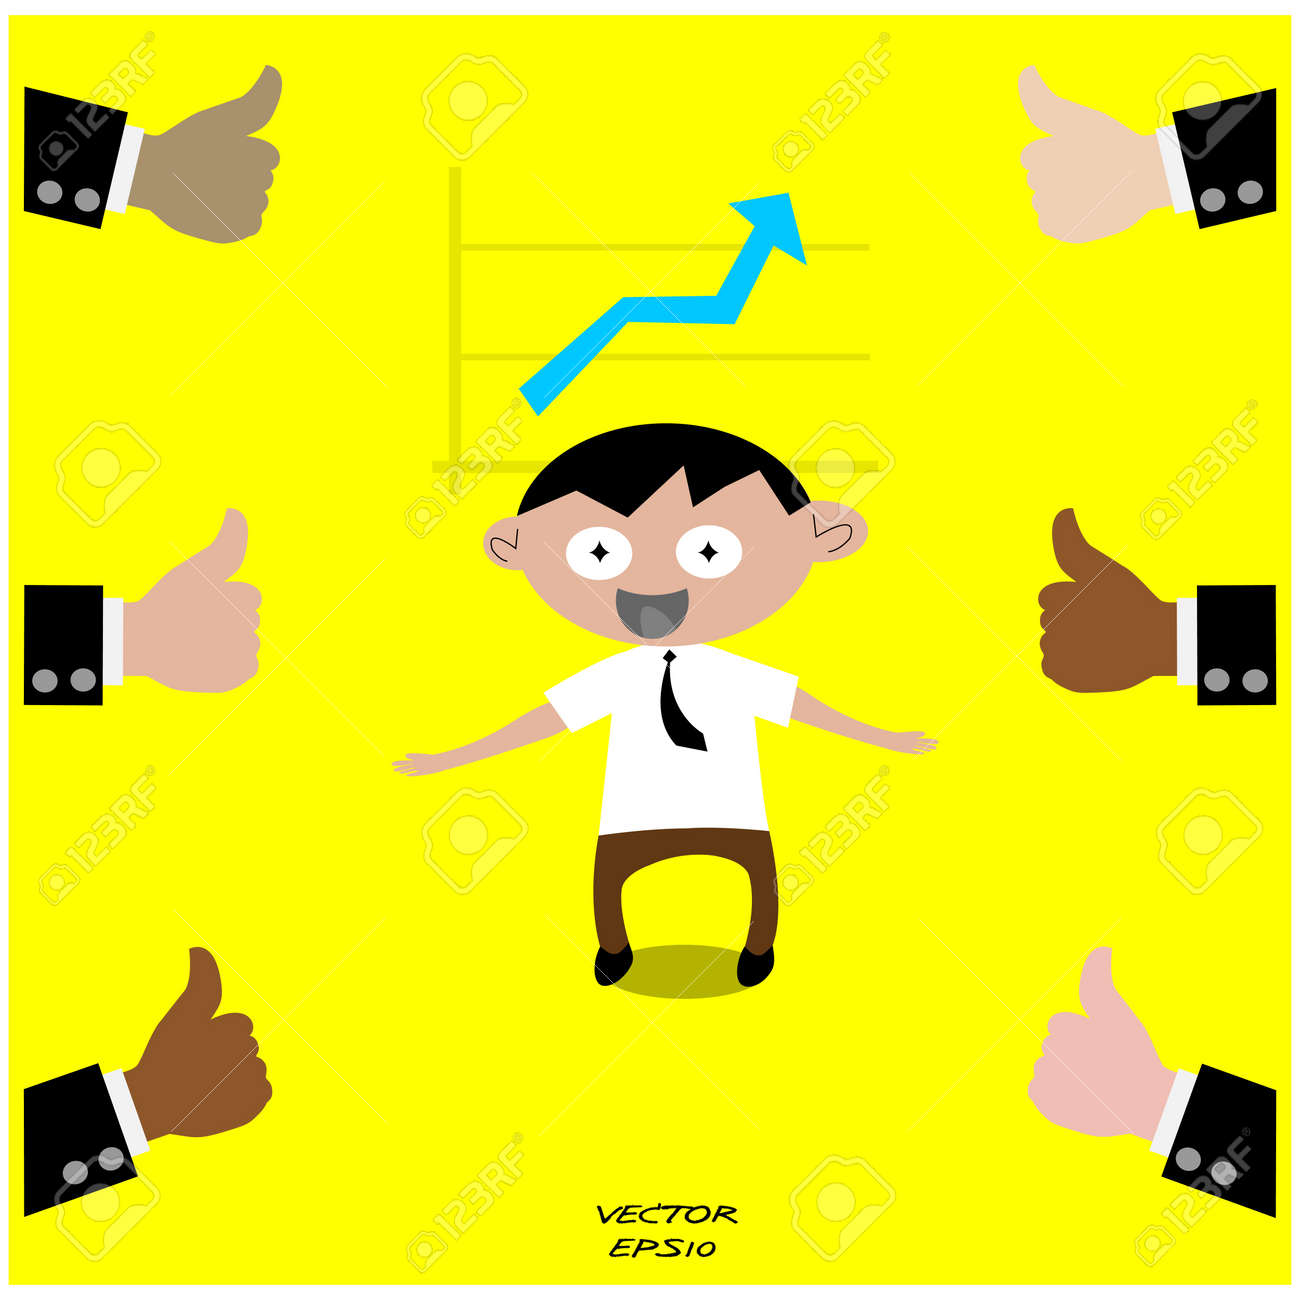 Businessman icon,business concept Stock Vector - 21447216